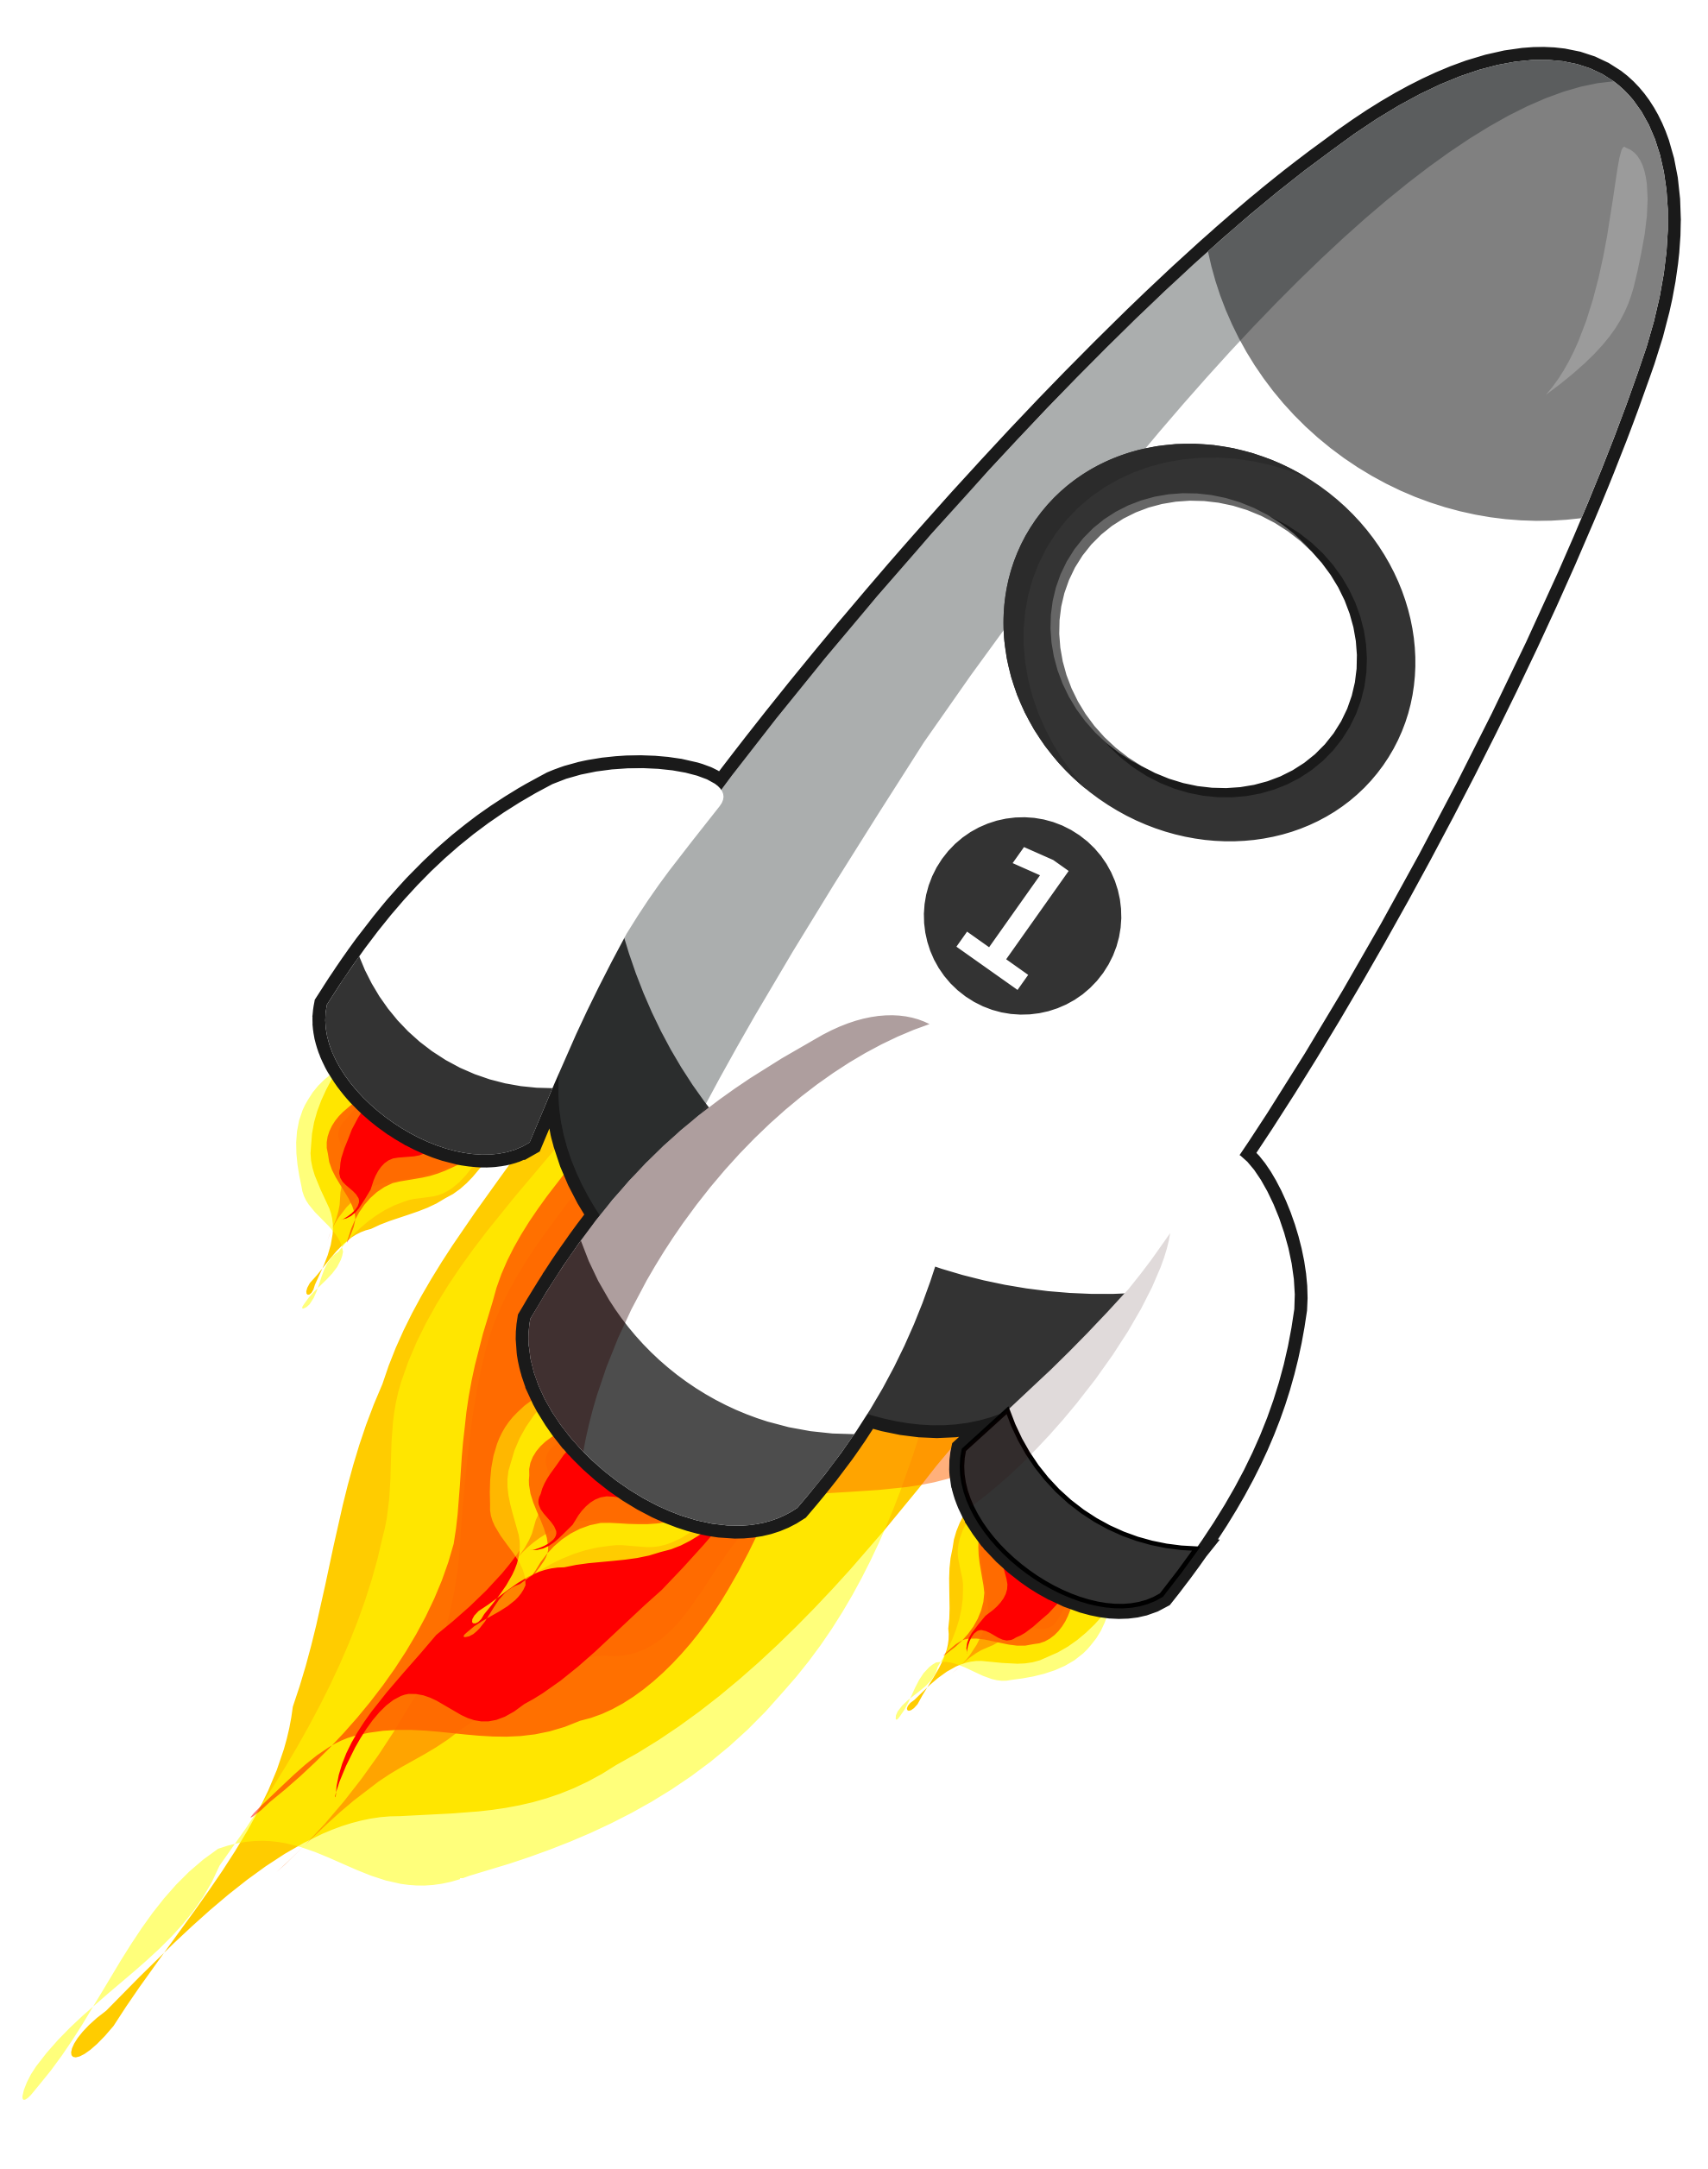 clip free download Vector launch rocket. The jetsons clipart jpg